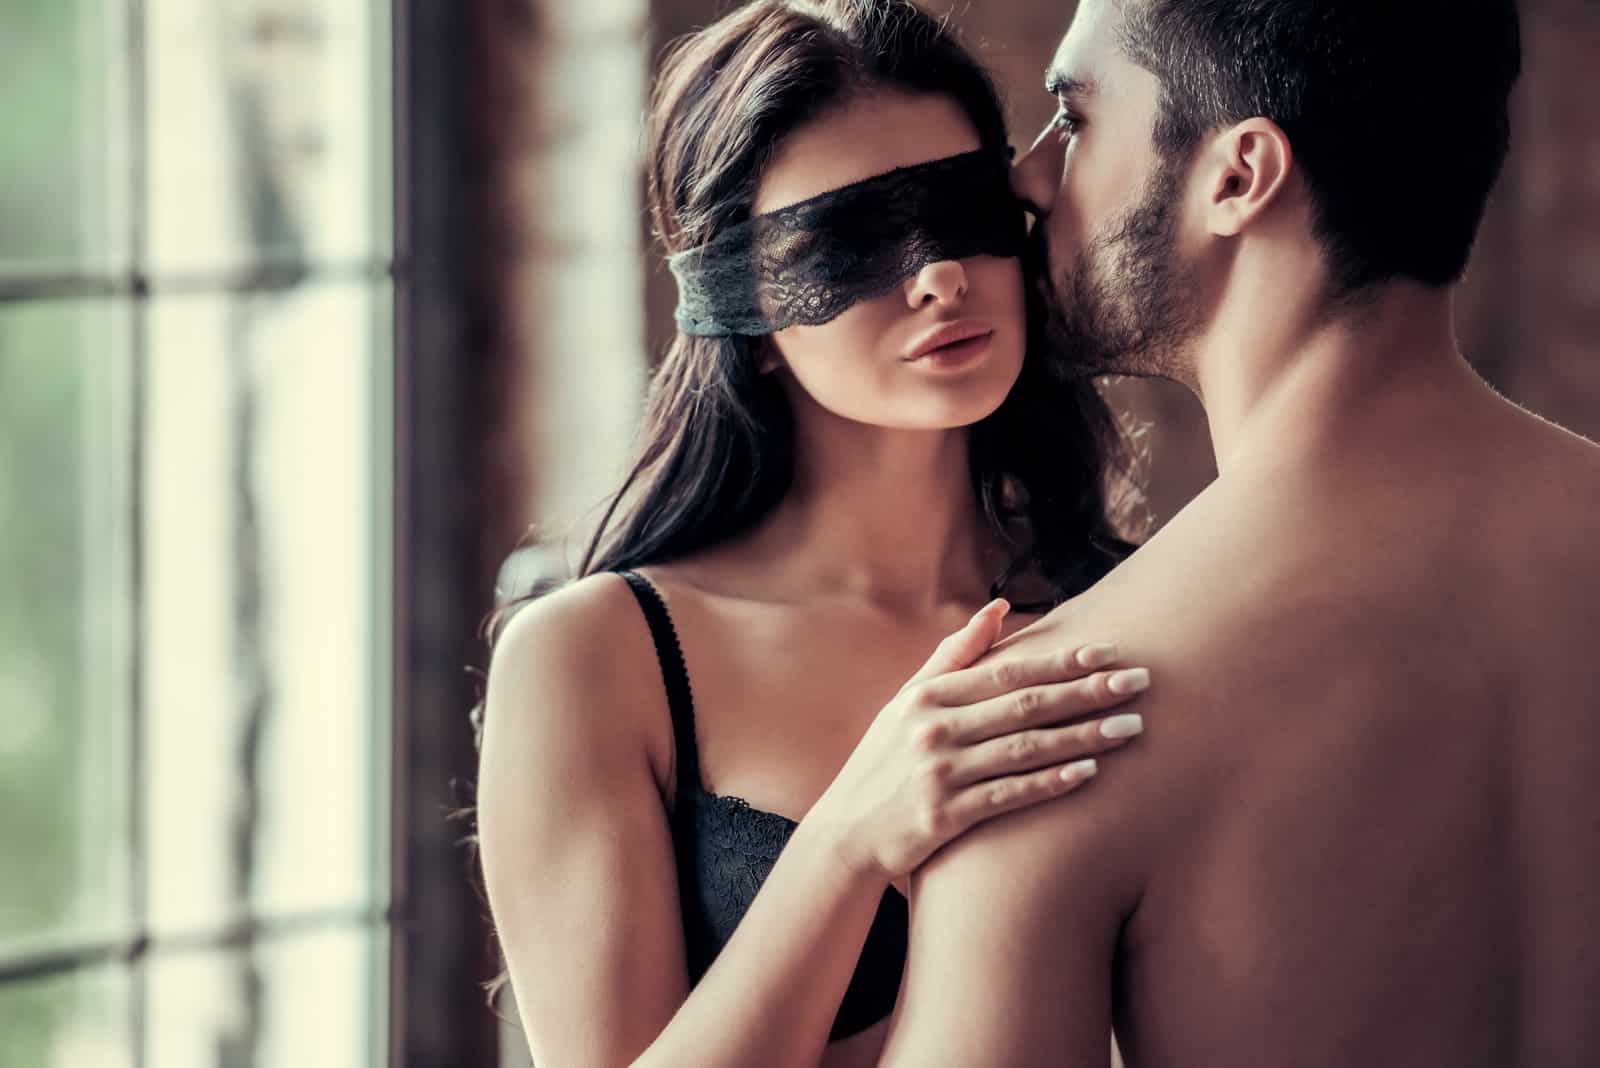 a woman blindfolded while a man kisses her